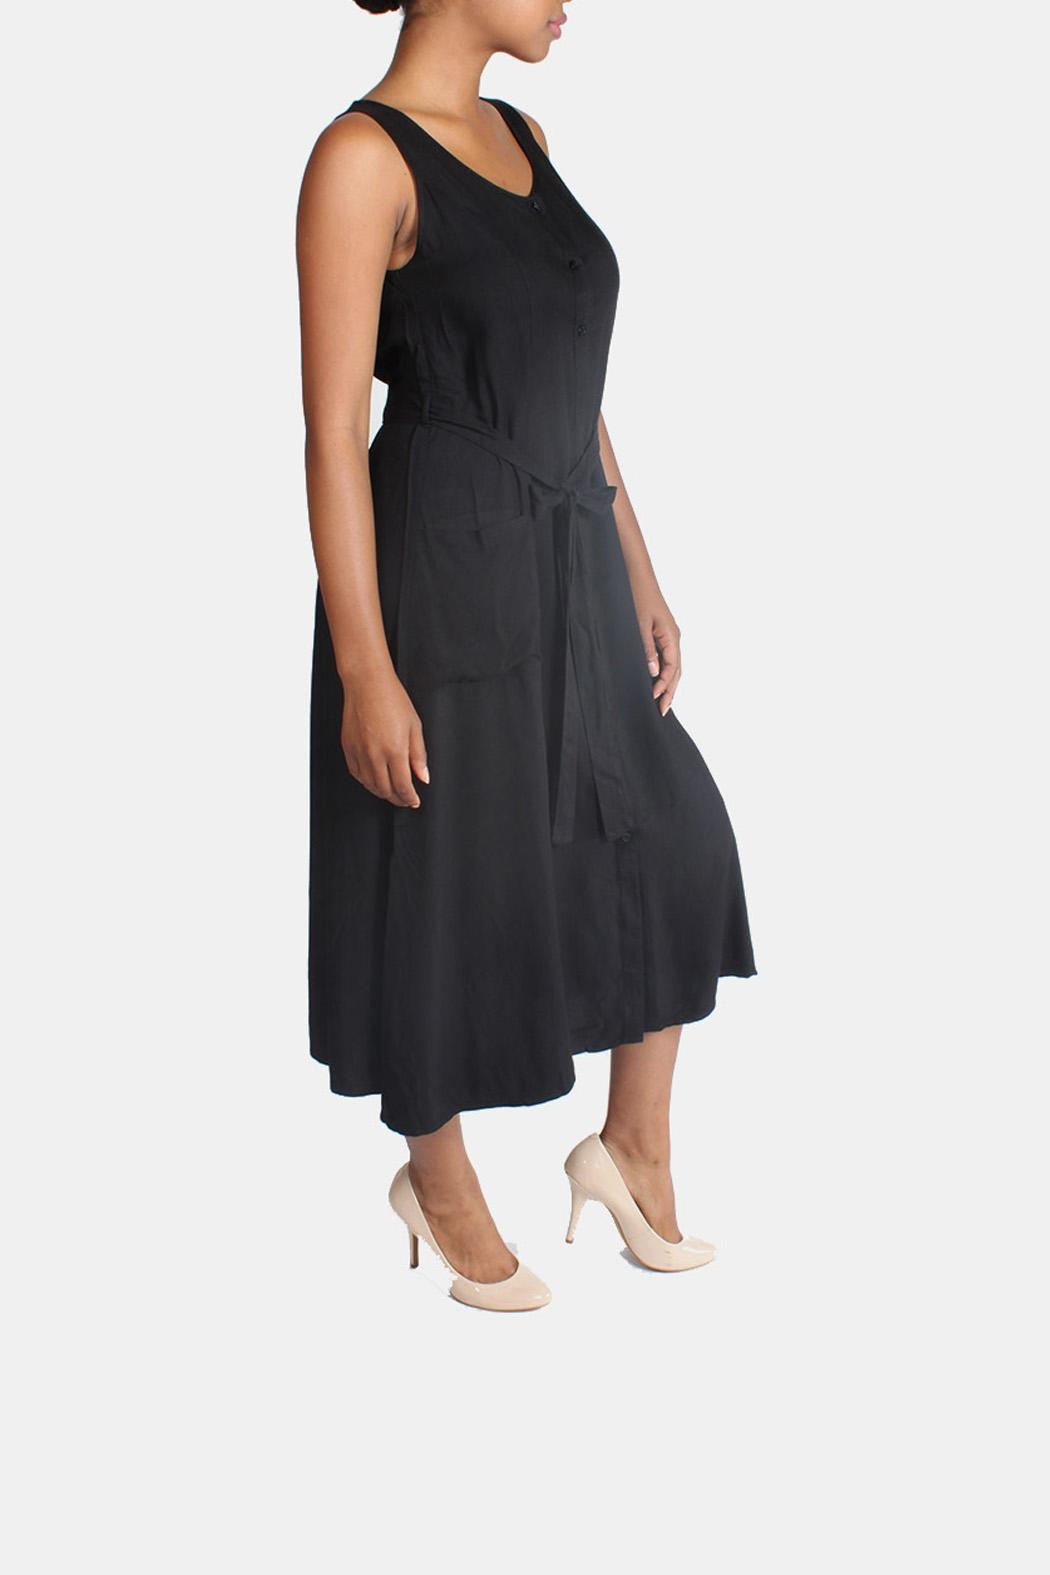 rokoko Button Down Maxi Dress - Back Cropped Image